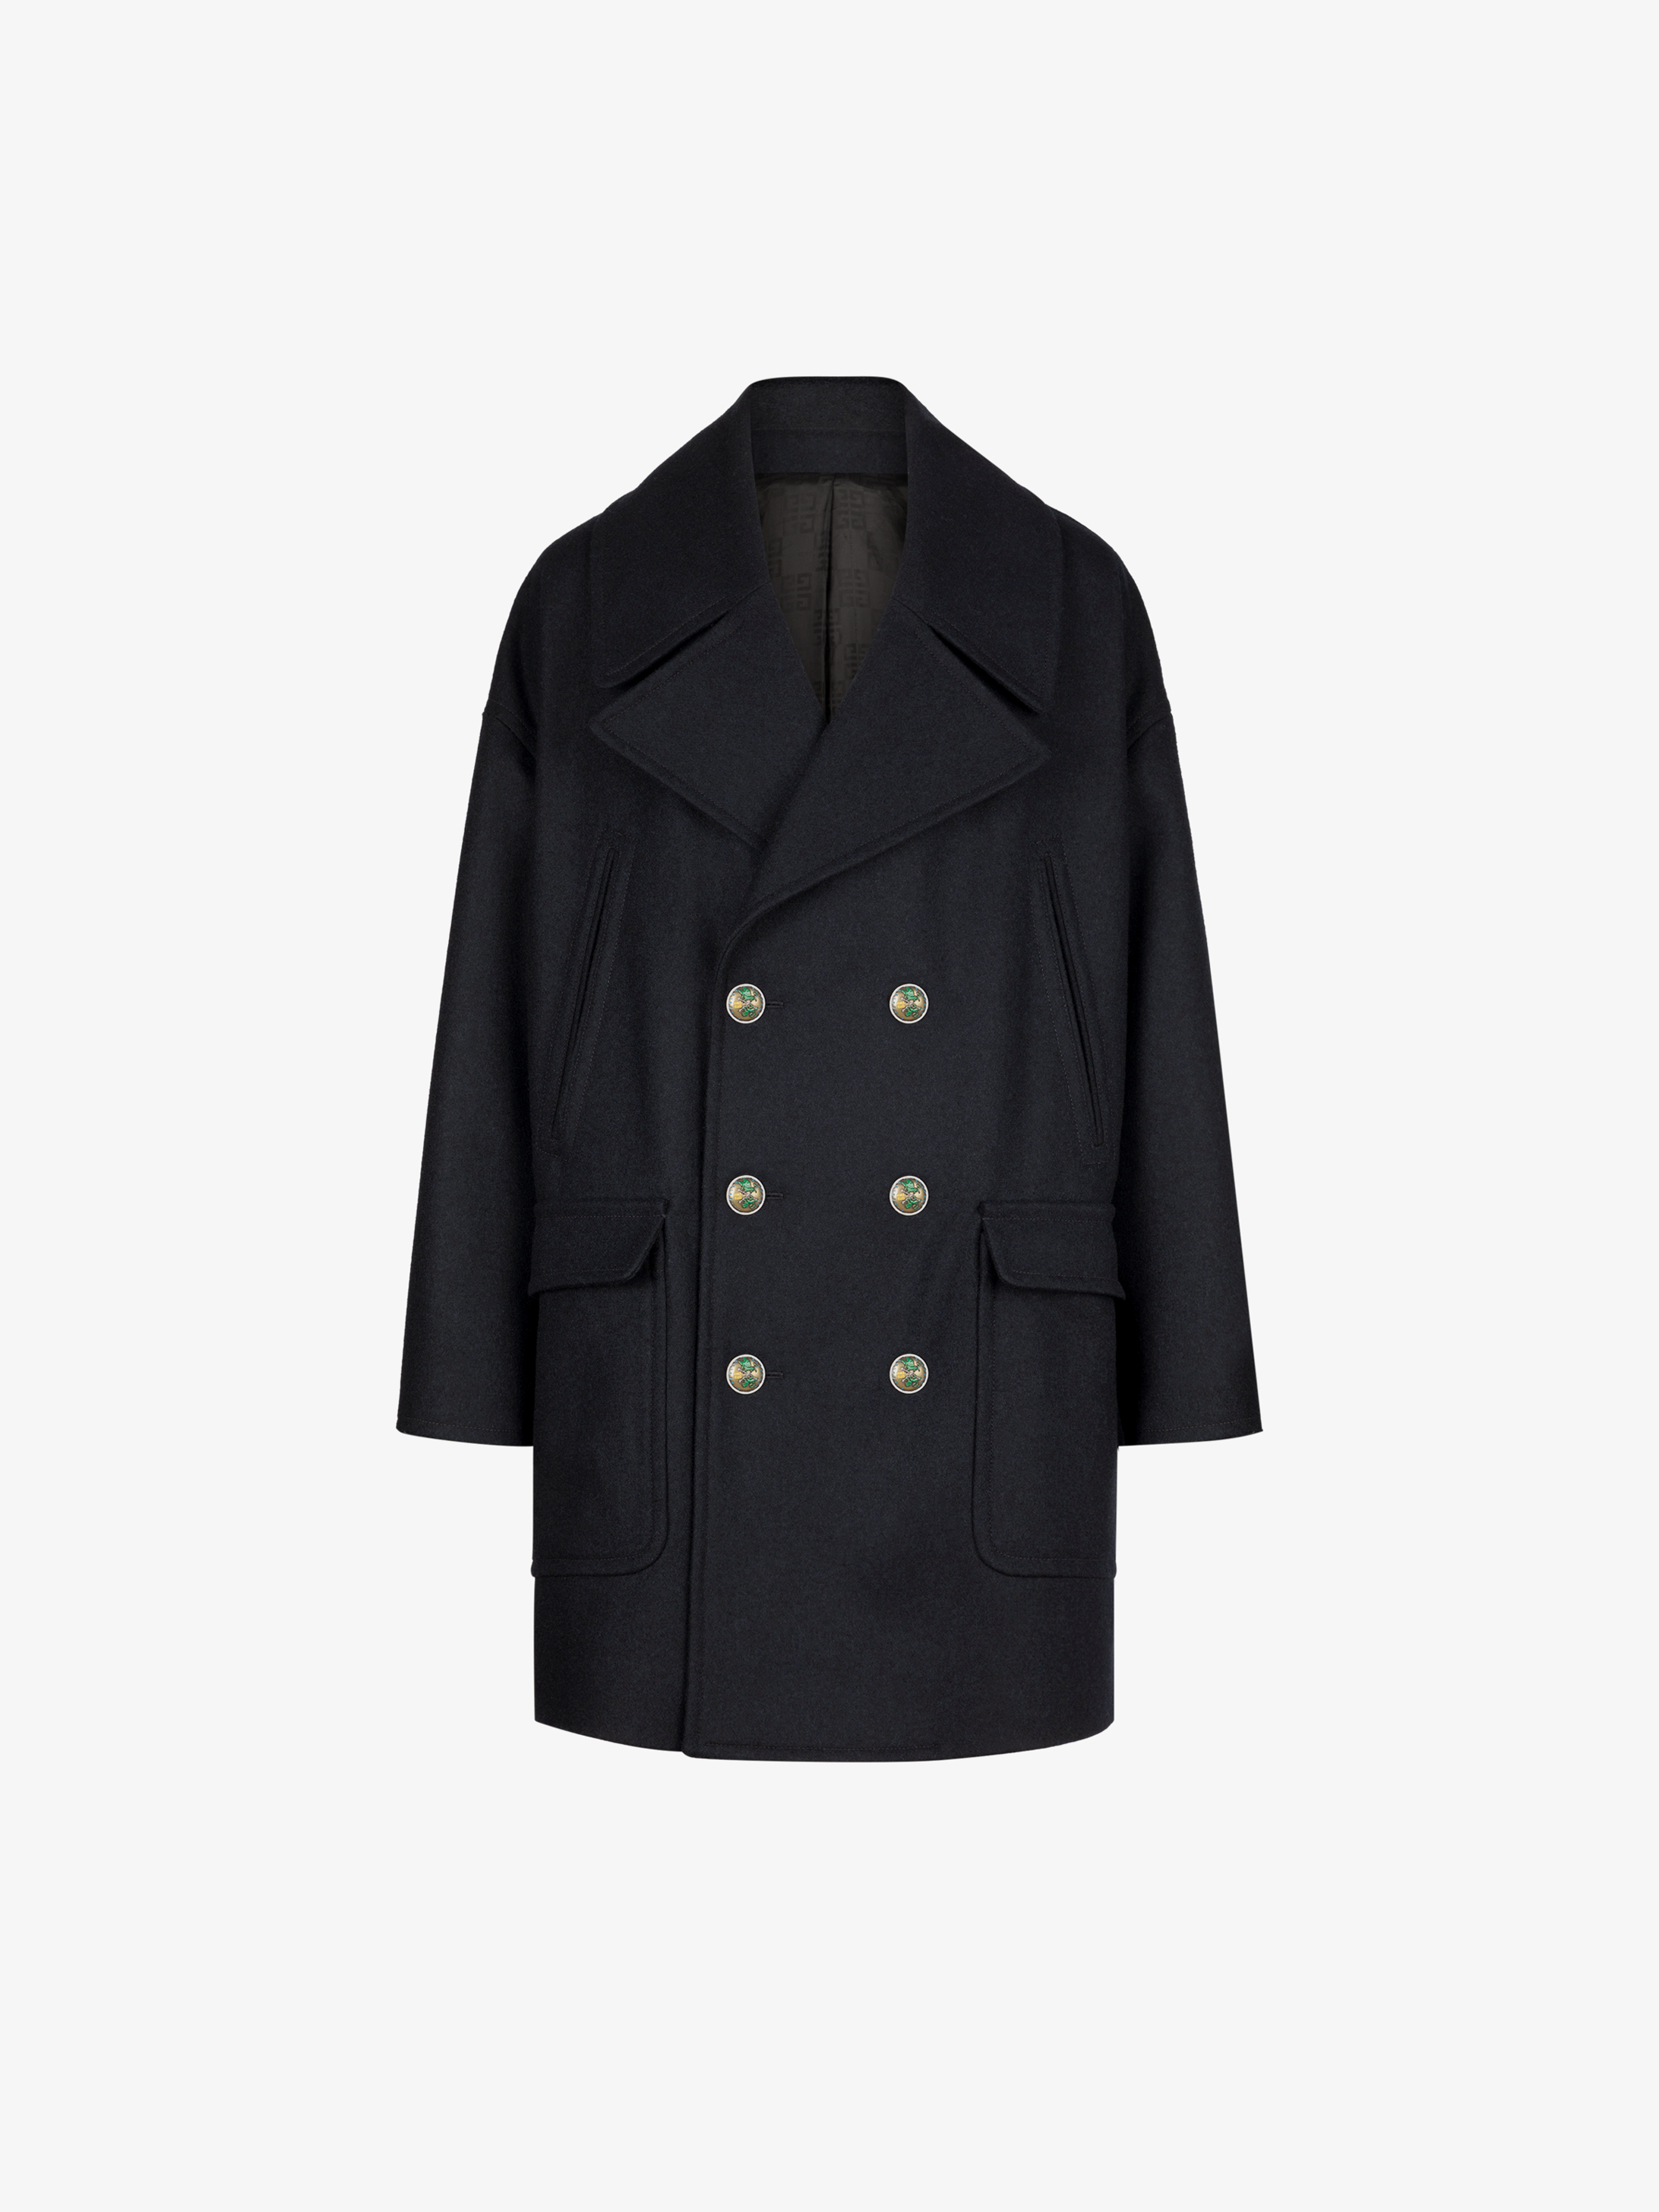 Oversized peacoat with blazon buttons